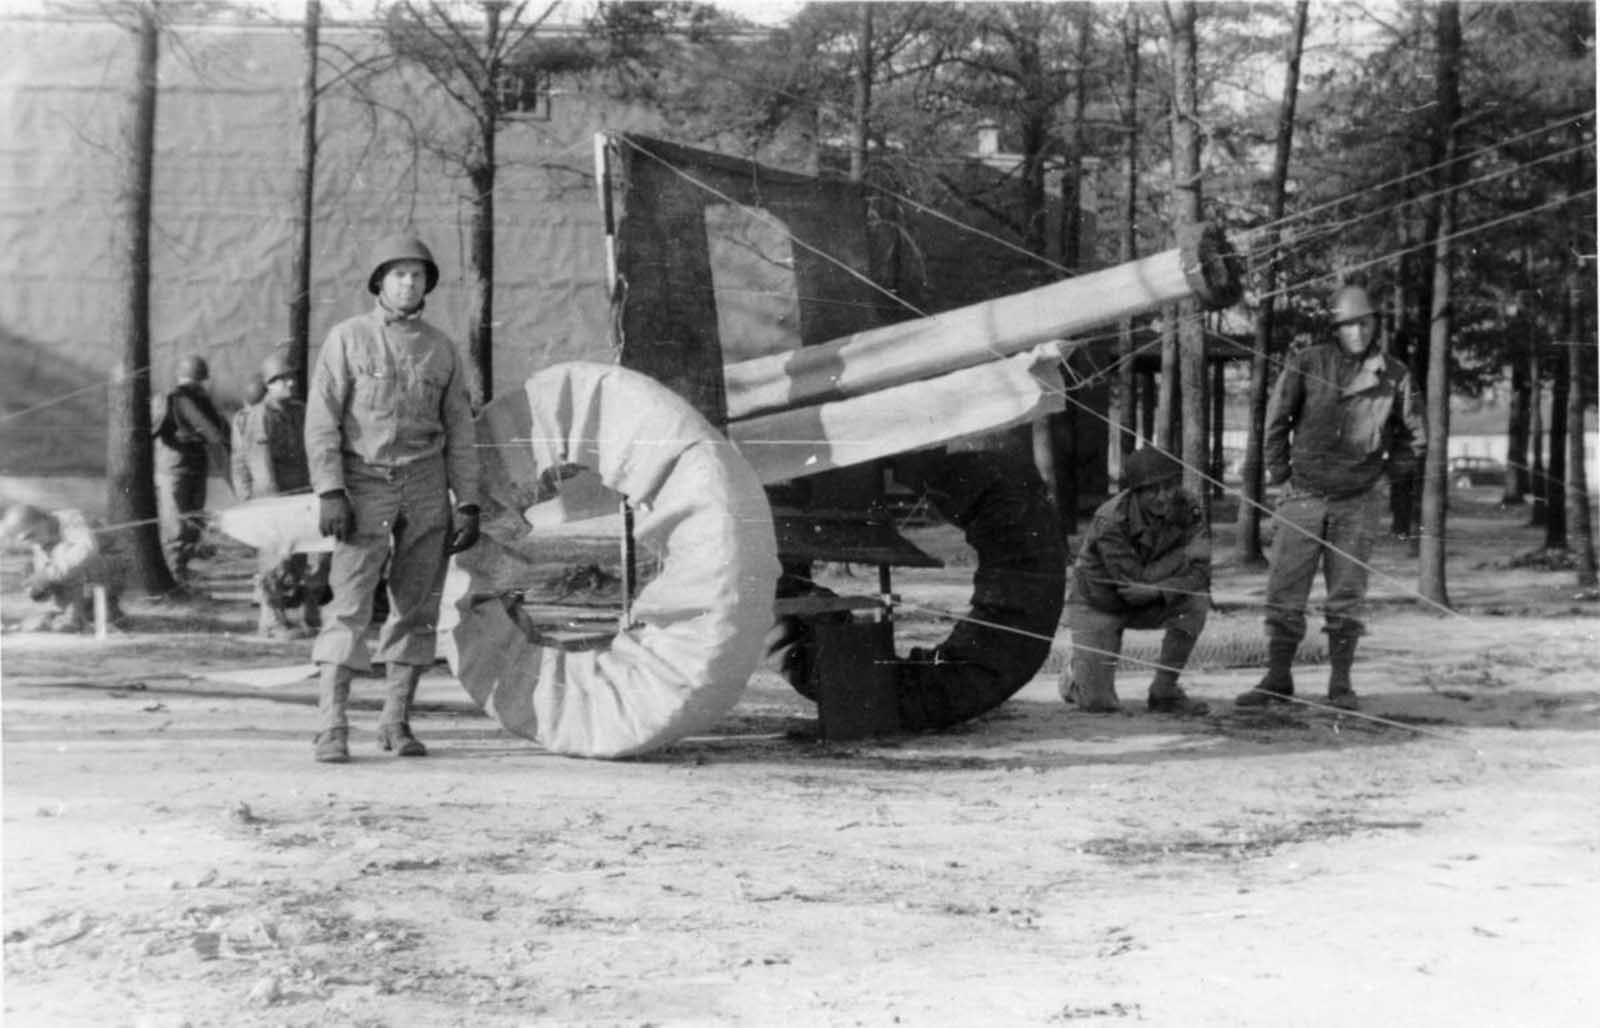 The 1,100-strong Ghost Army would usually impersonate a specific, much larger division, such as the 6th Armored Division, which had 15,000–20,000 soldiers. This photo shows a mock-up of an artillery piece typically used to support large divisions.